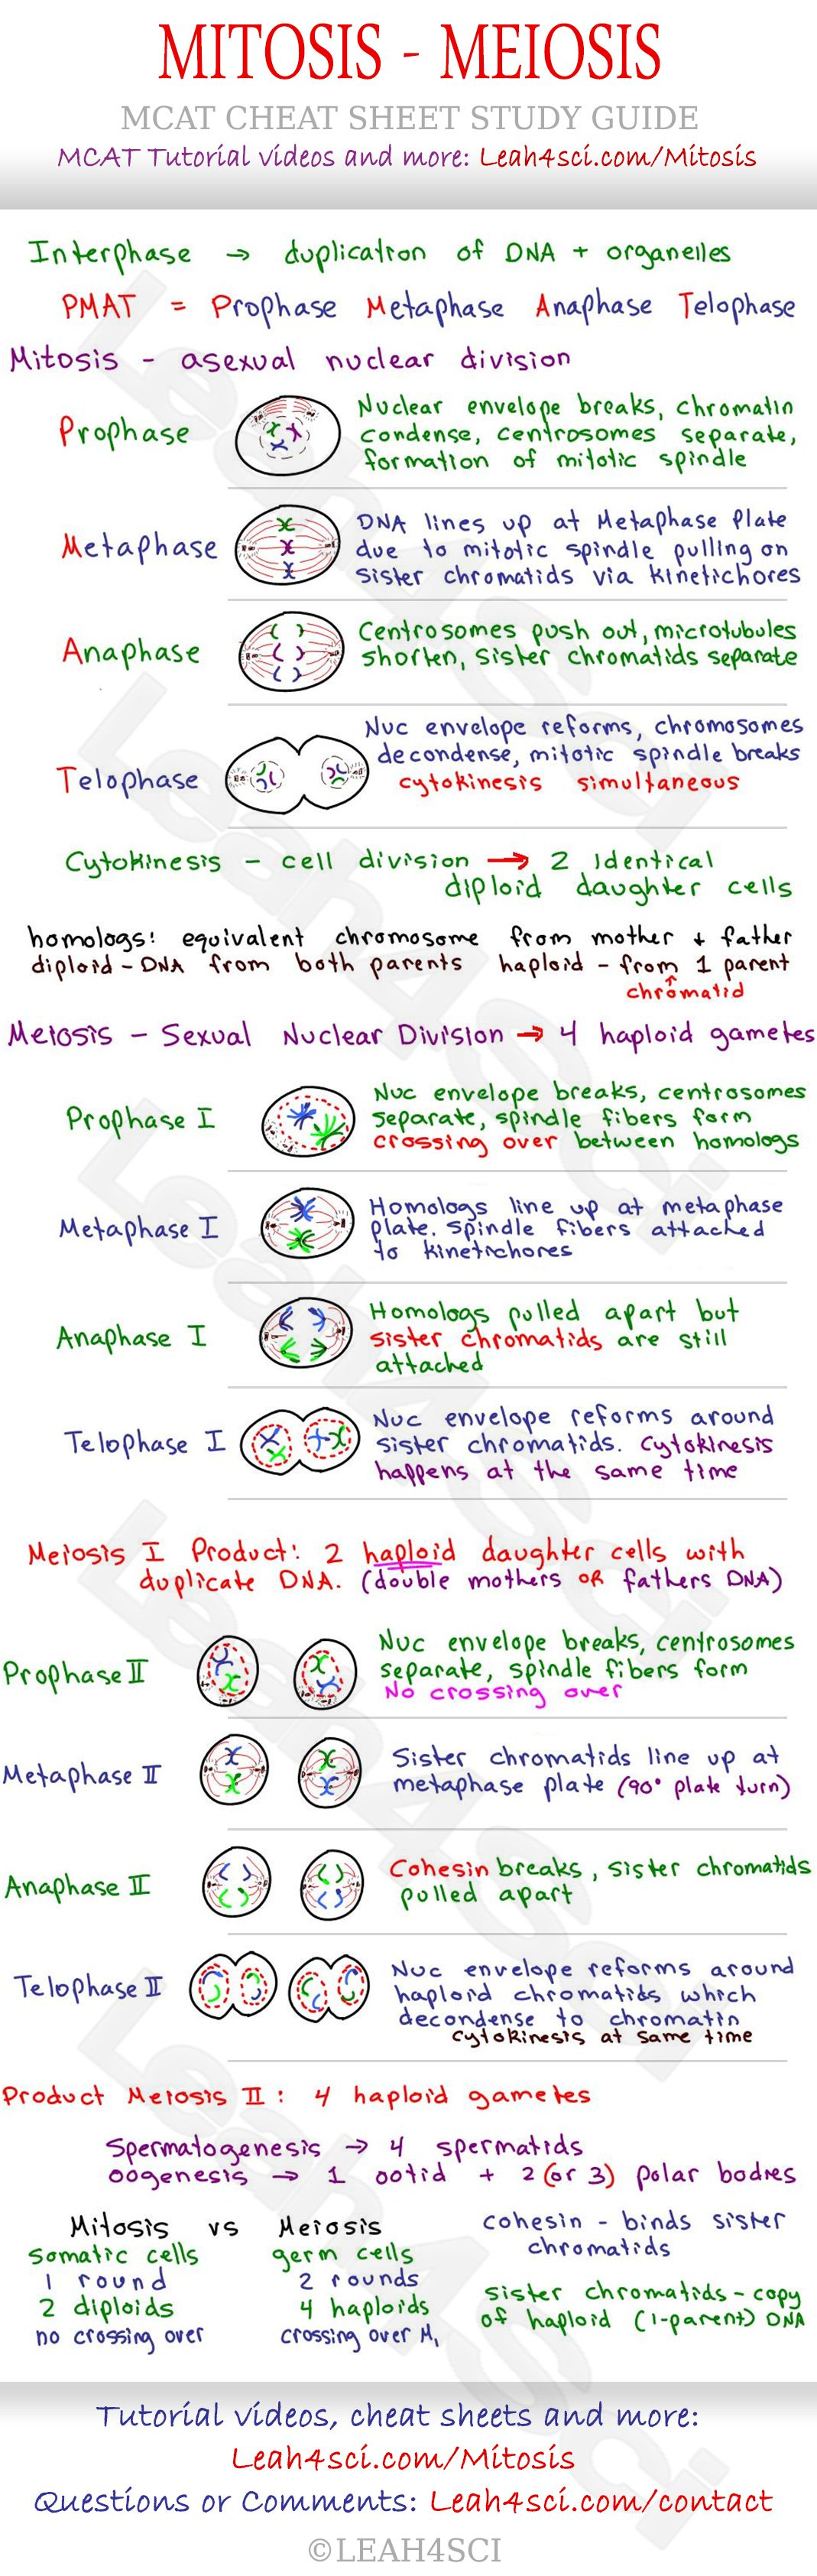 Mitosis And Meiosis Mcat Cheat Sheet Study Guide Learn What Happens In Each Step Prophase Metaphase Anaphase Teaching Biology Biology Notes School Notes [ 3369 x 1069 Pixel ]